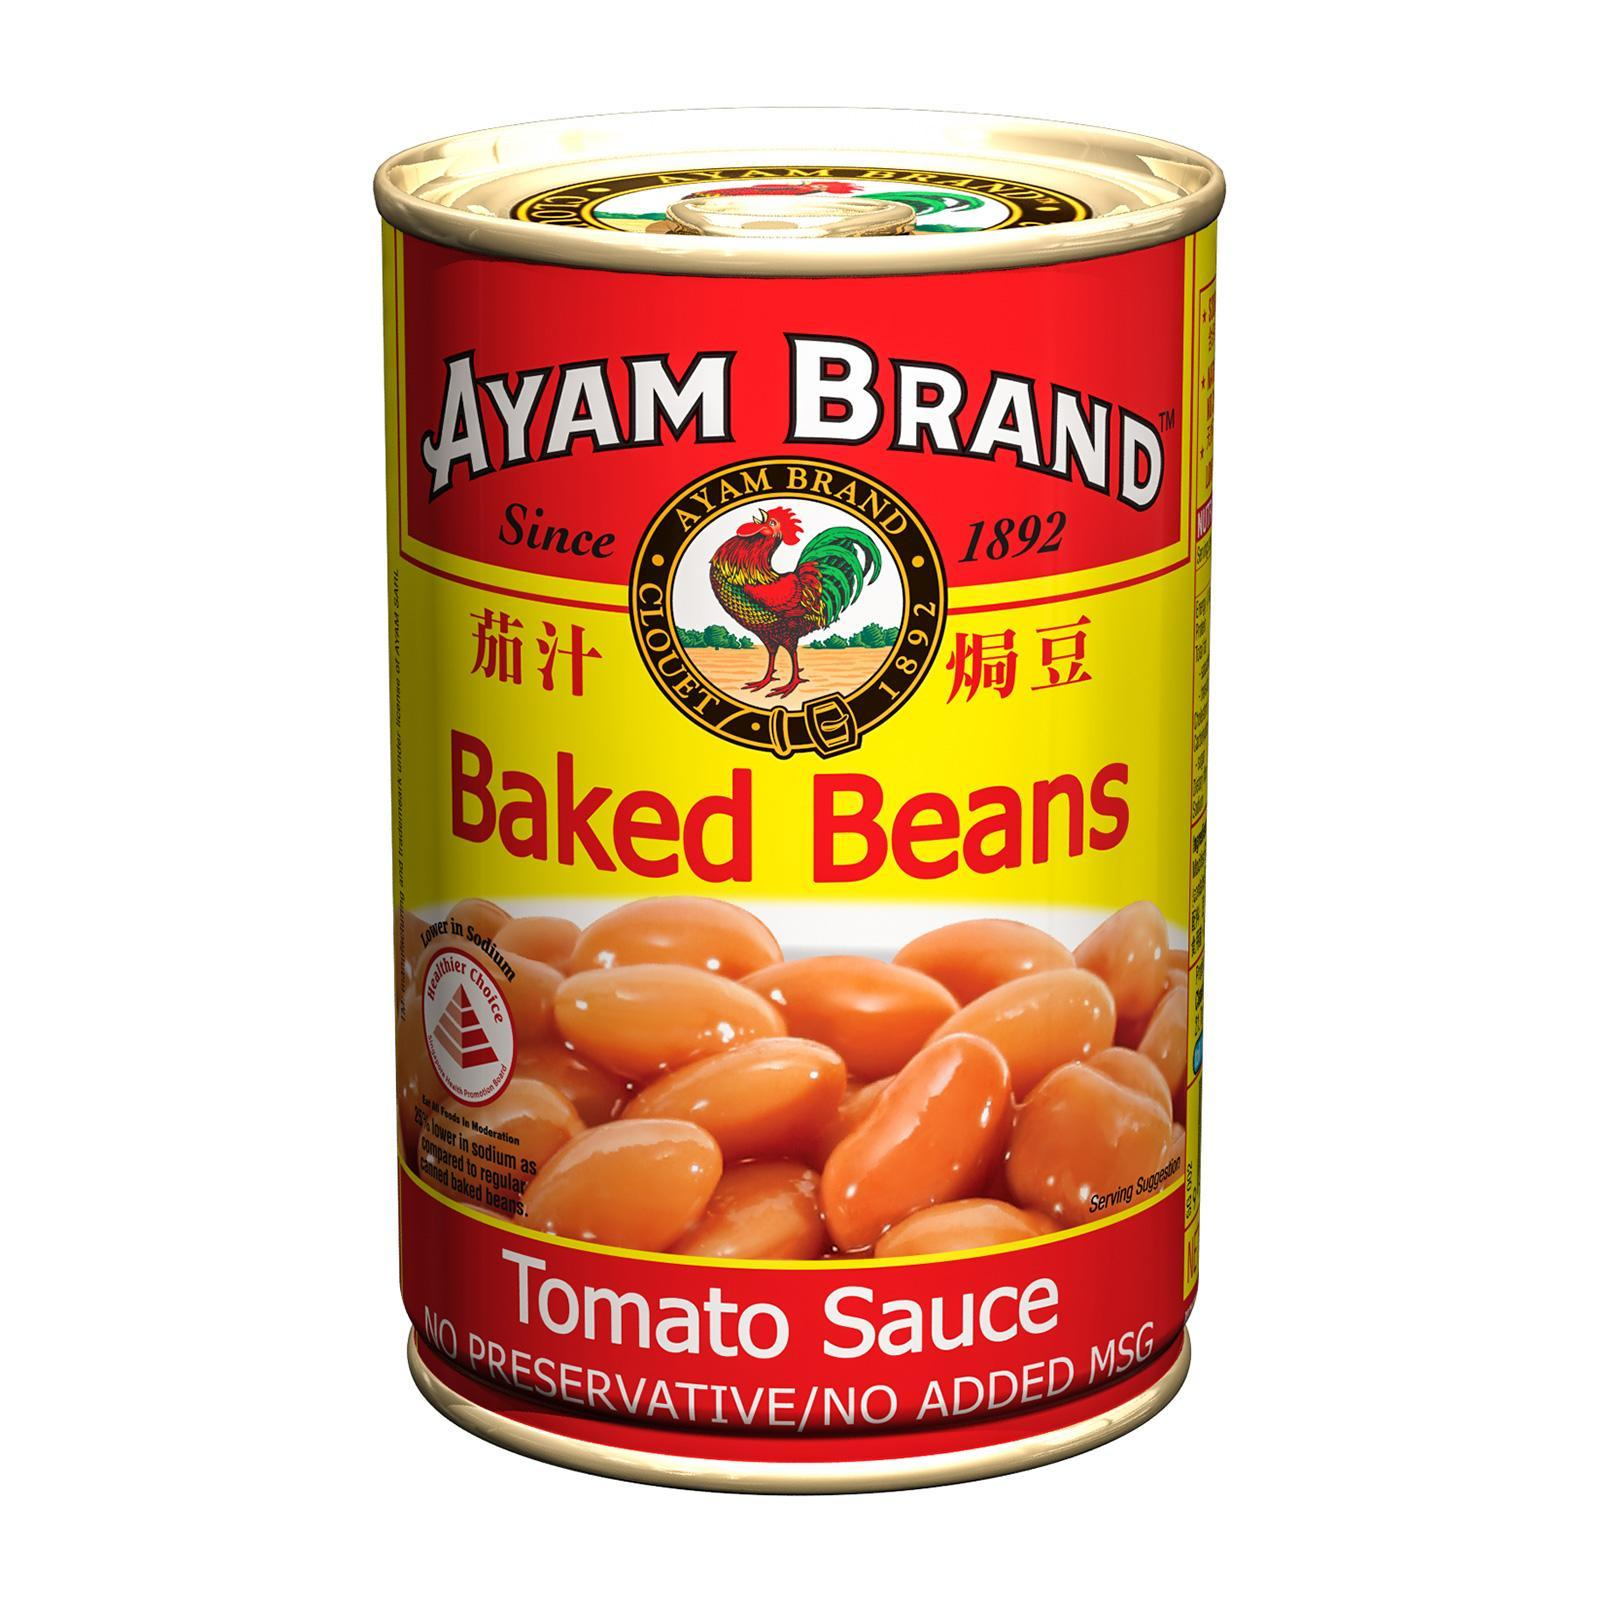 Ayam Brand Baked Beans in Tomato Sauce